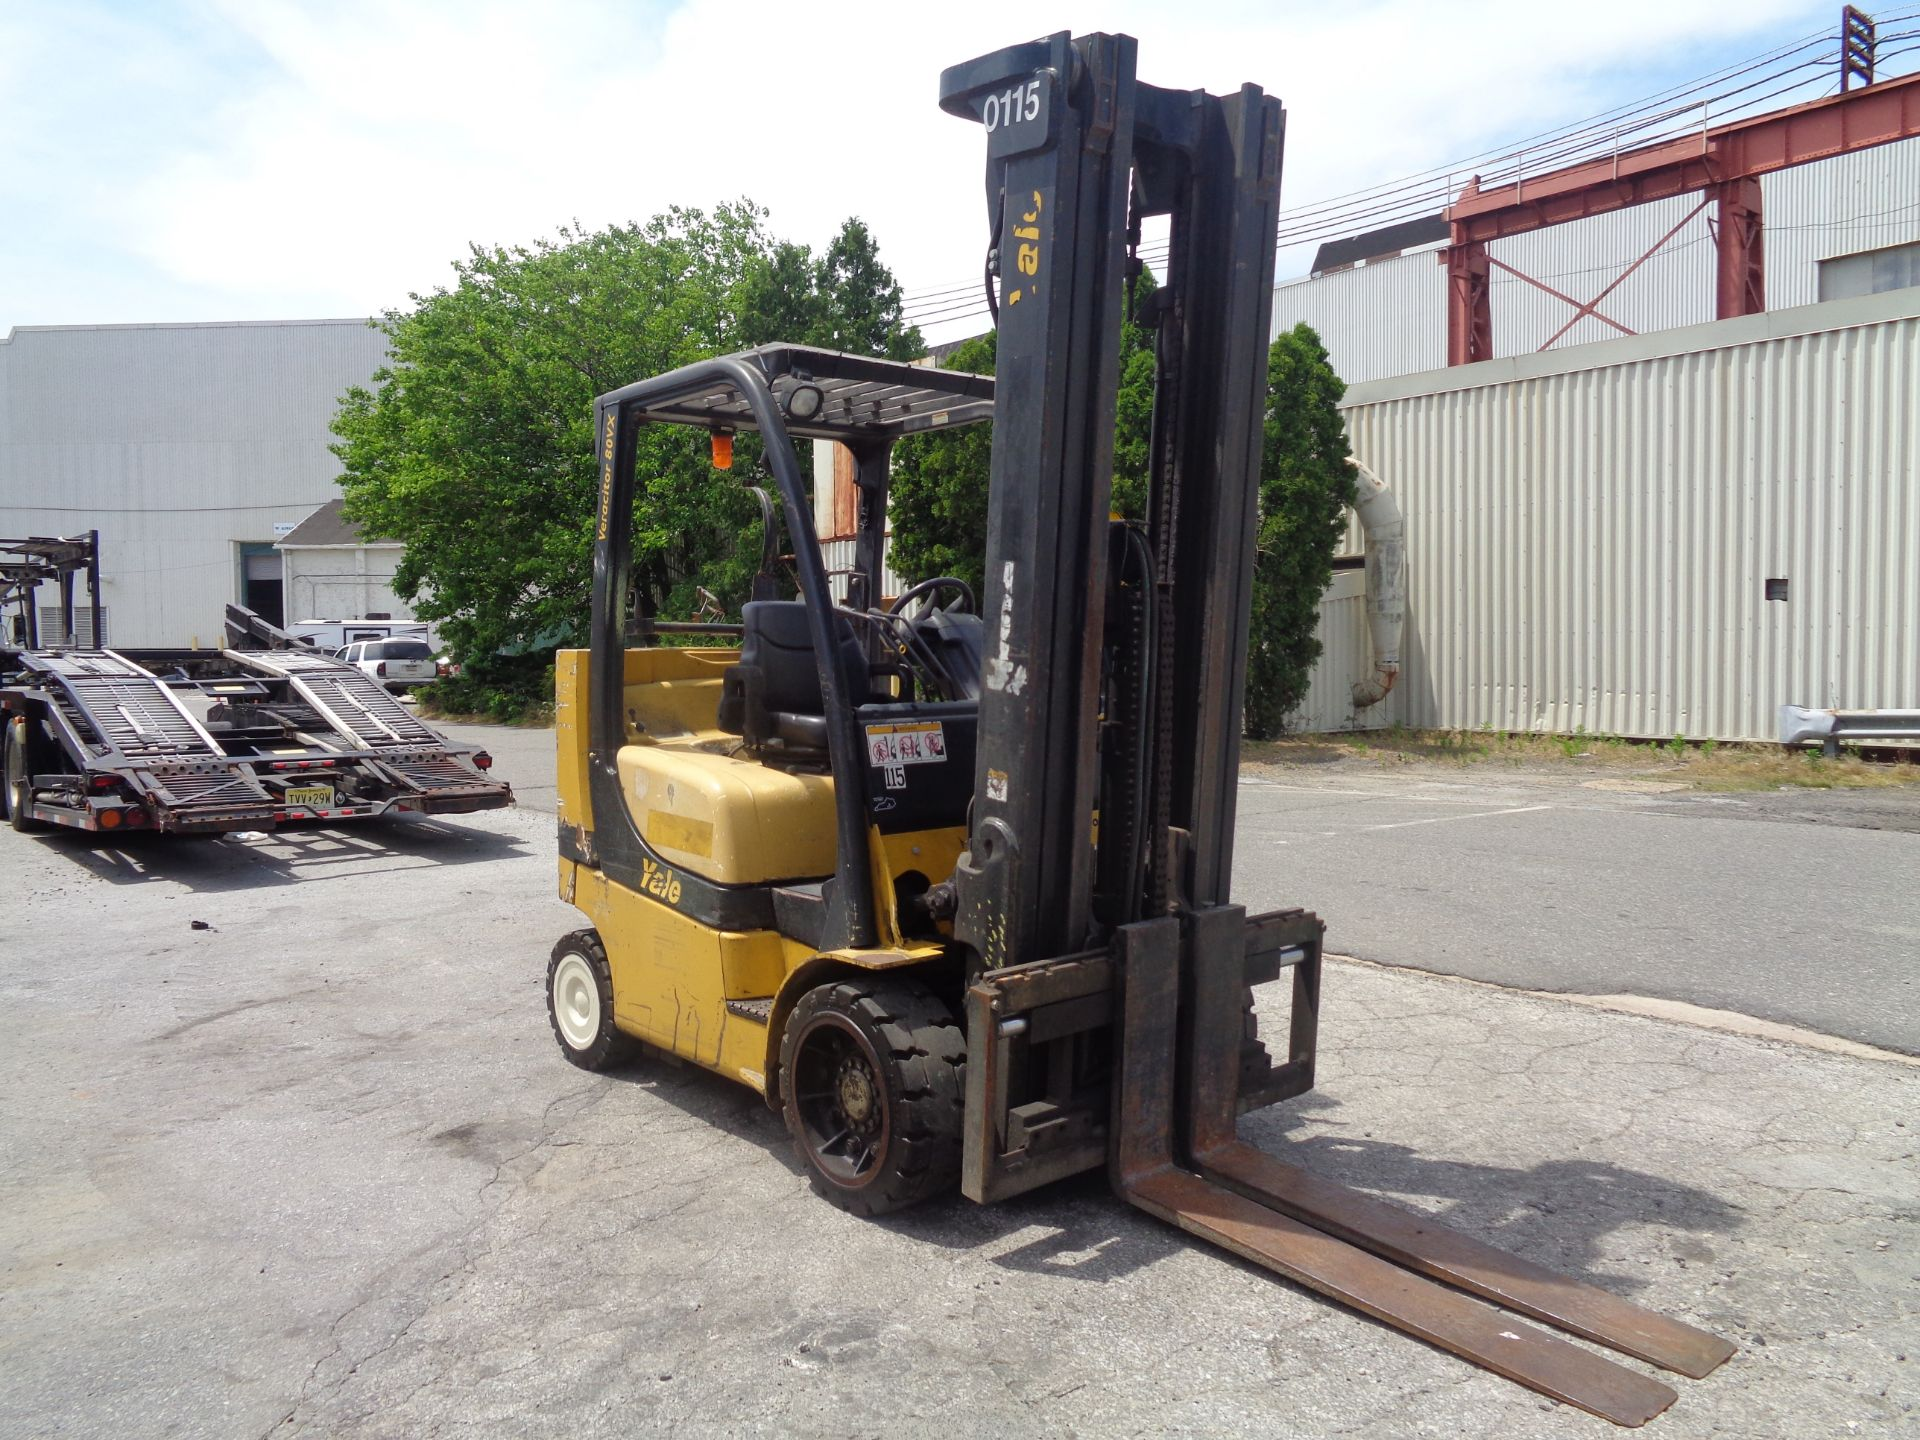 Yale GC080VXNGSE107.6 8,000lb Forklift - Image 5 of 18